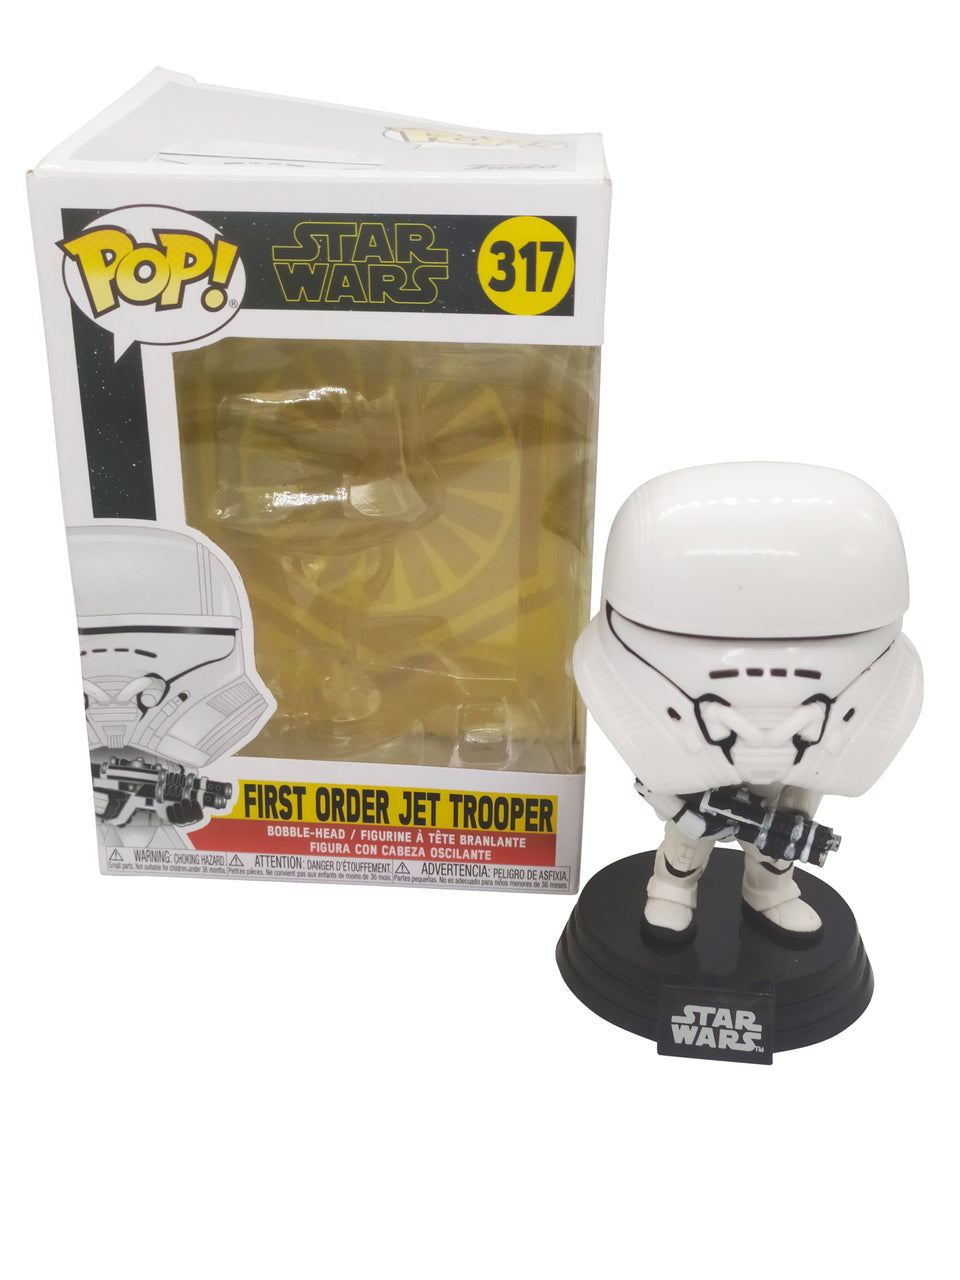 funko pop star wars first order jet trooper( 317 )